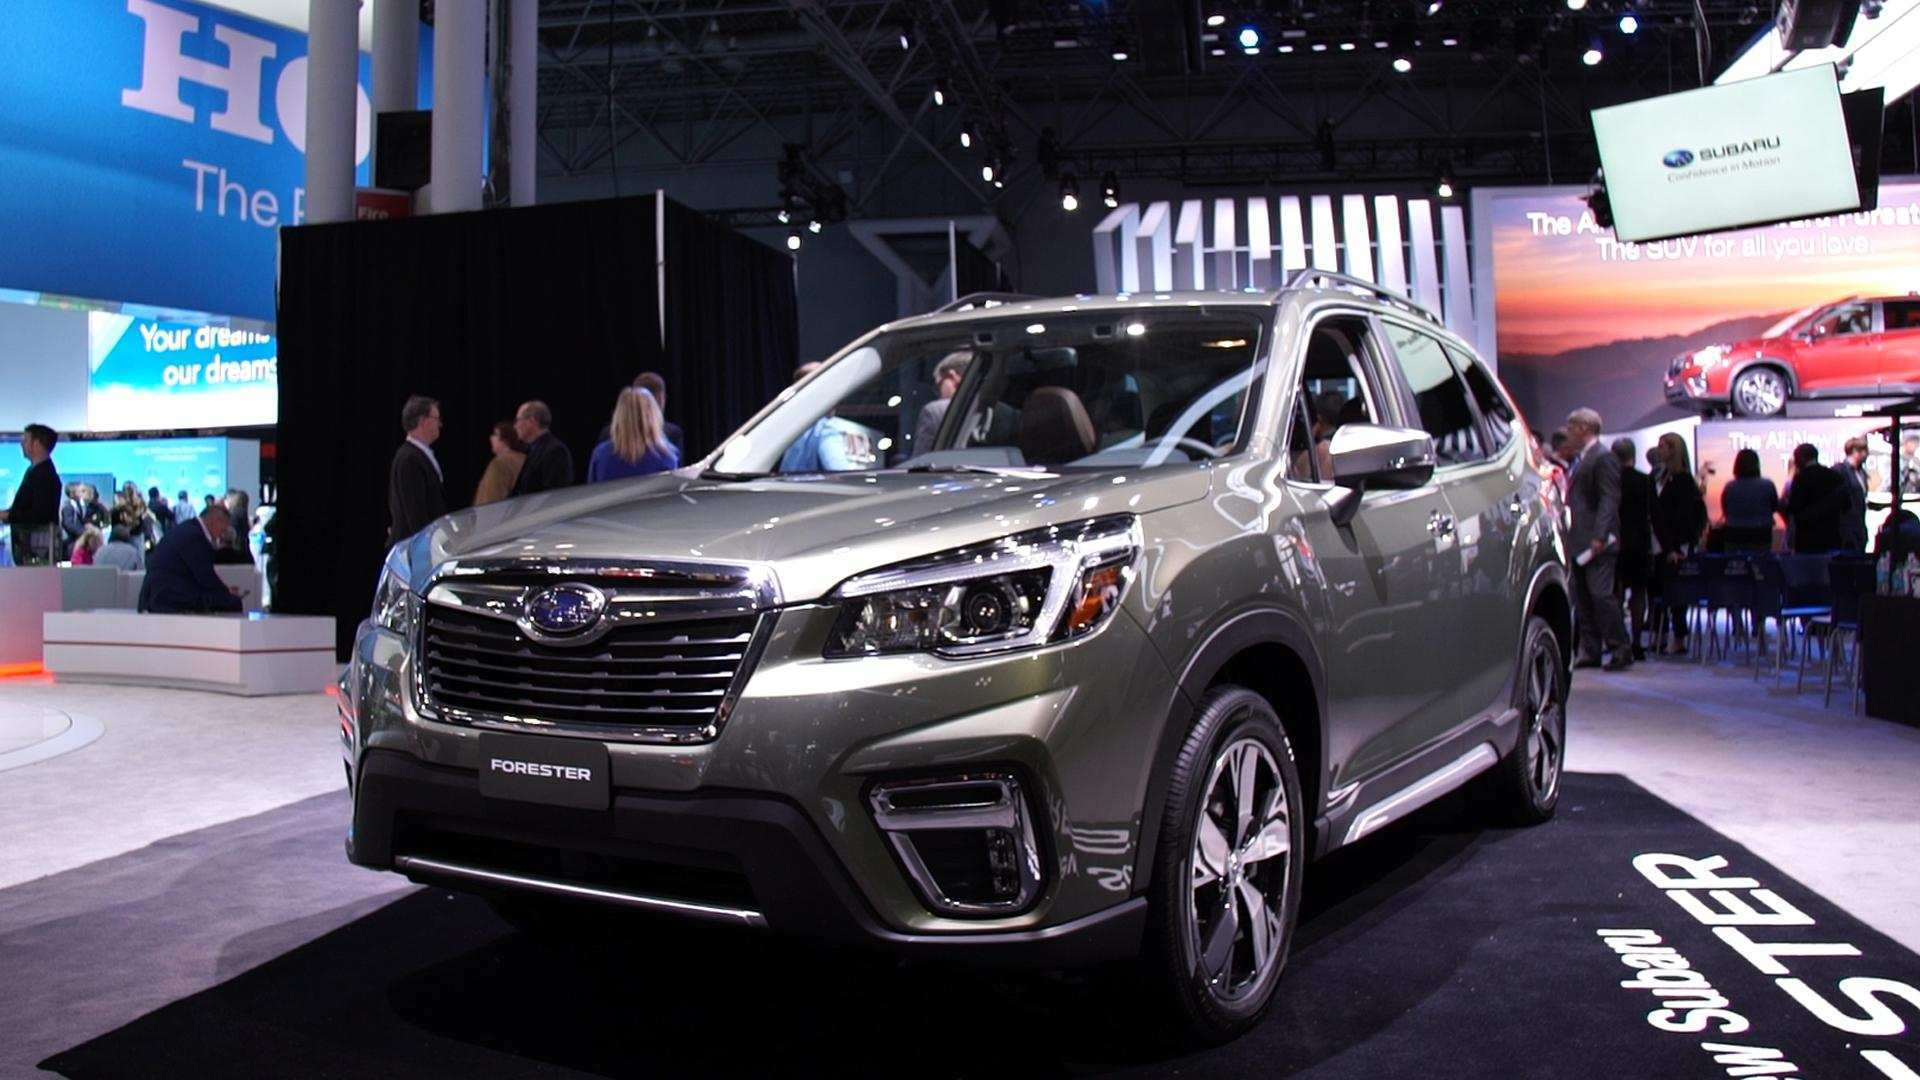 85 Concept of 2020 Subaru Forester Canada Exterior and Interior by 2020 Subaru Forester Canada